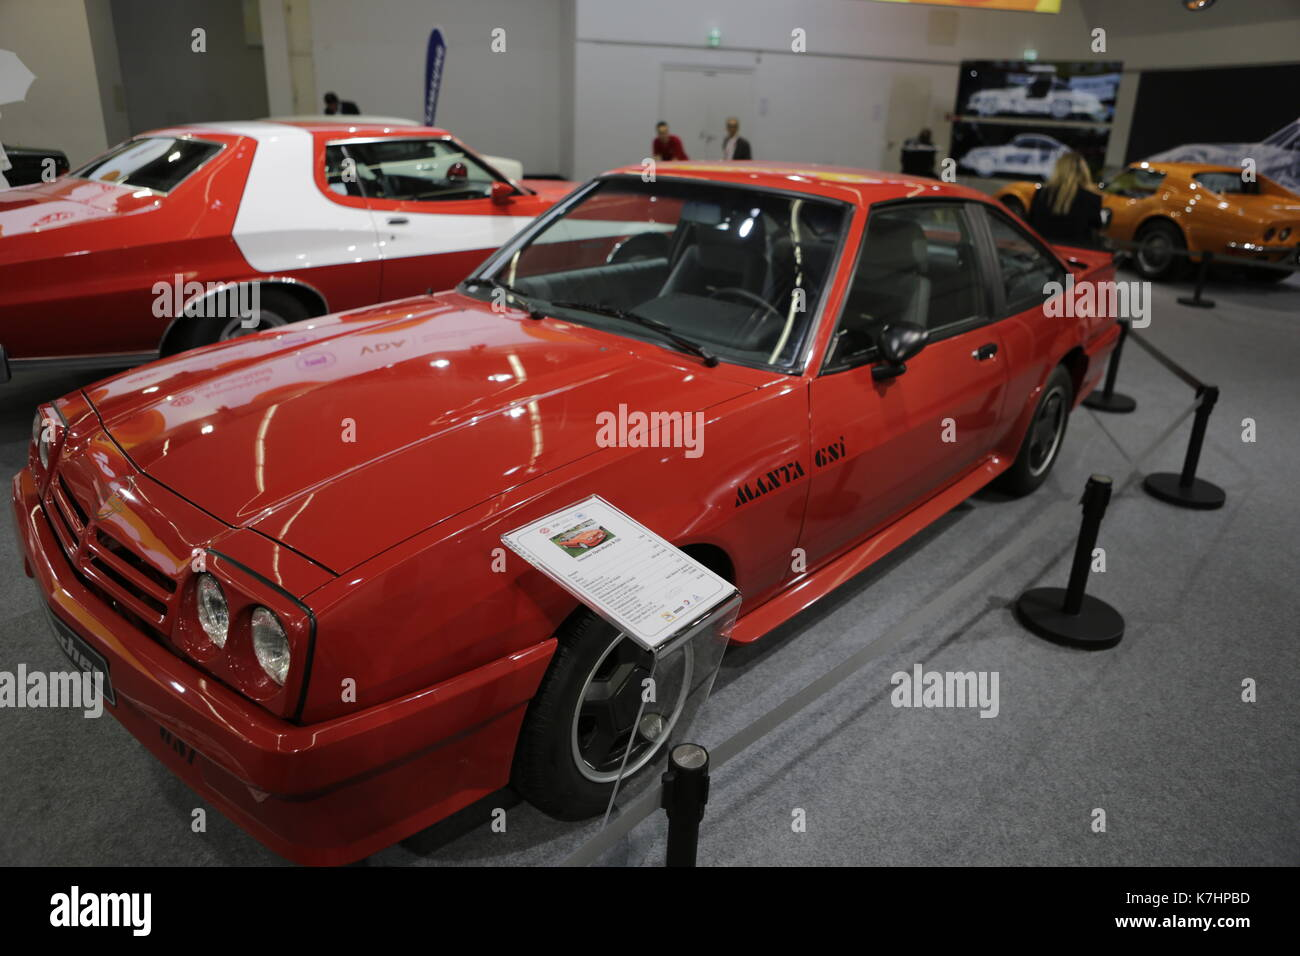 Opel Manta Stock Photos Images Page 2 Alamy 1973 Interior Frankfurt Germany 15th September 2017 A 1985 Irmscher B Gsi